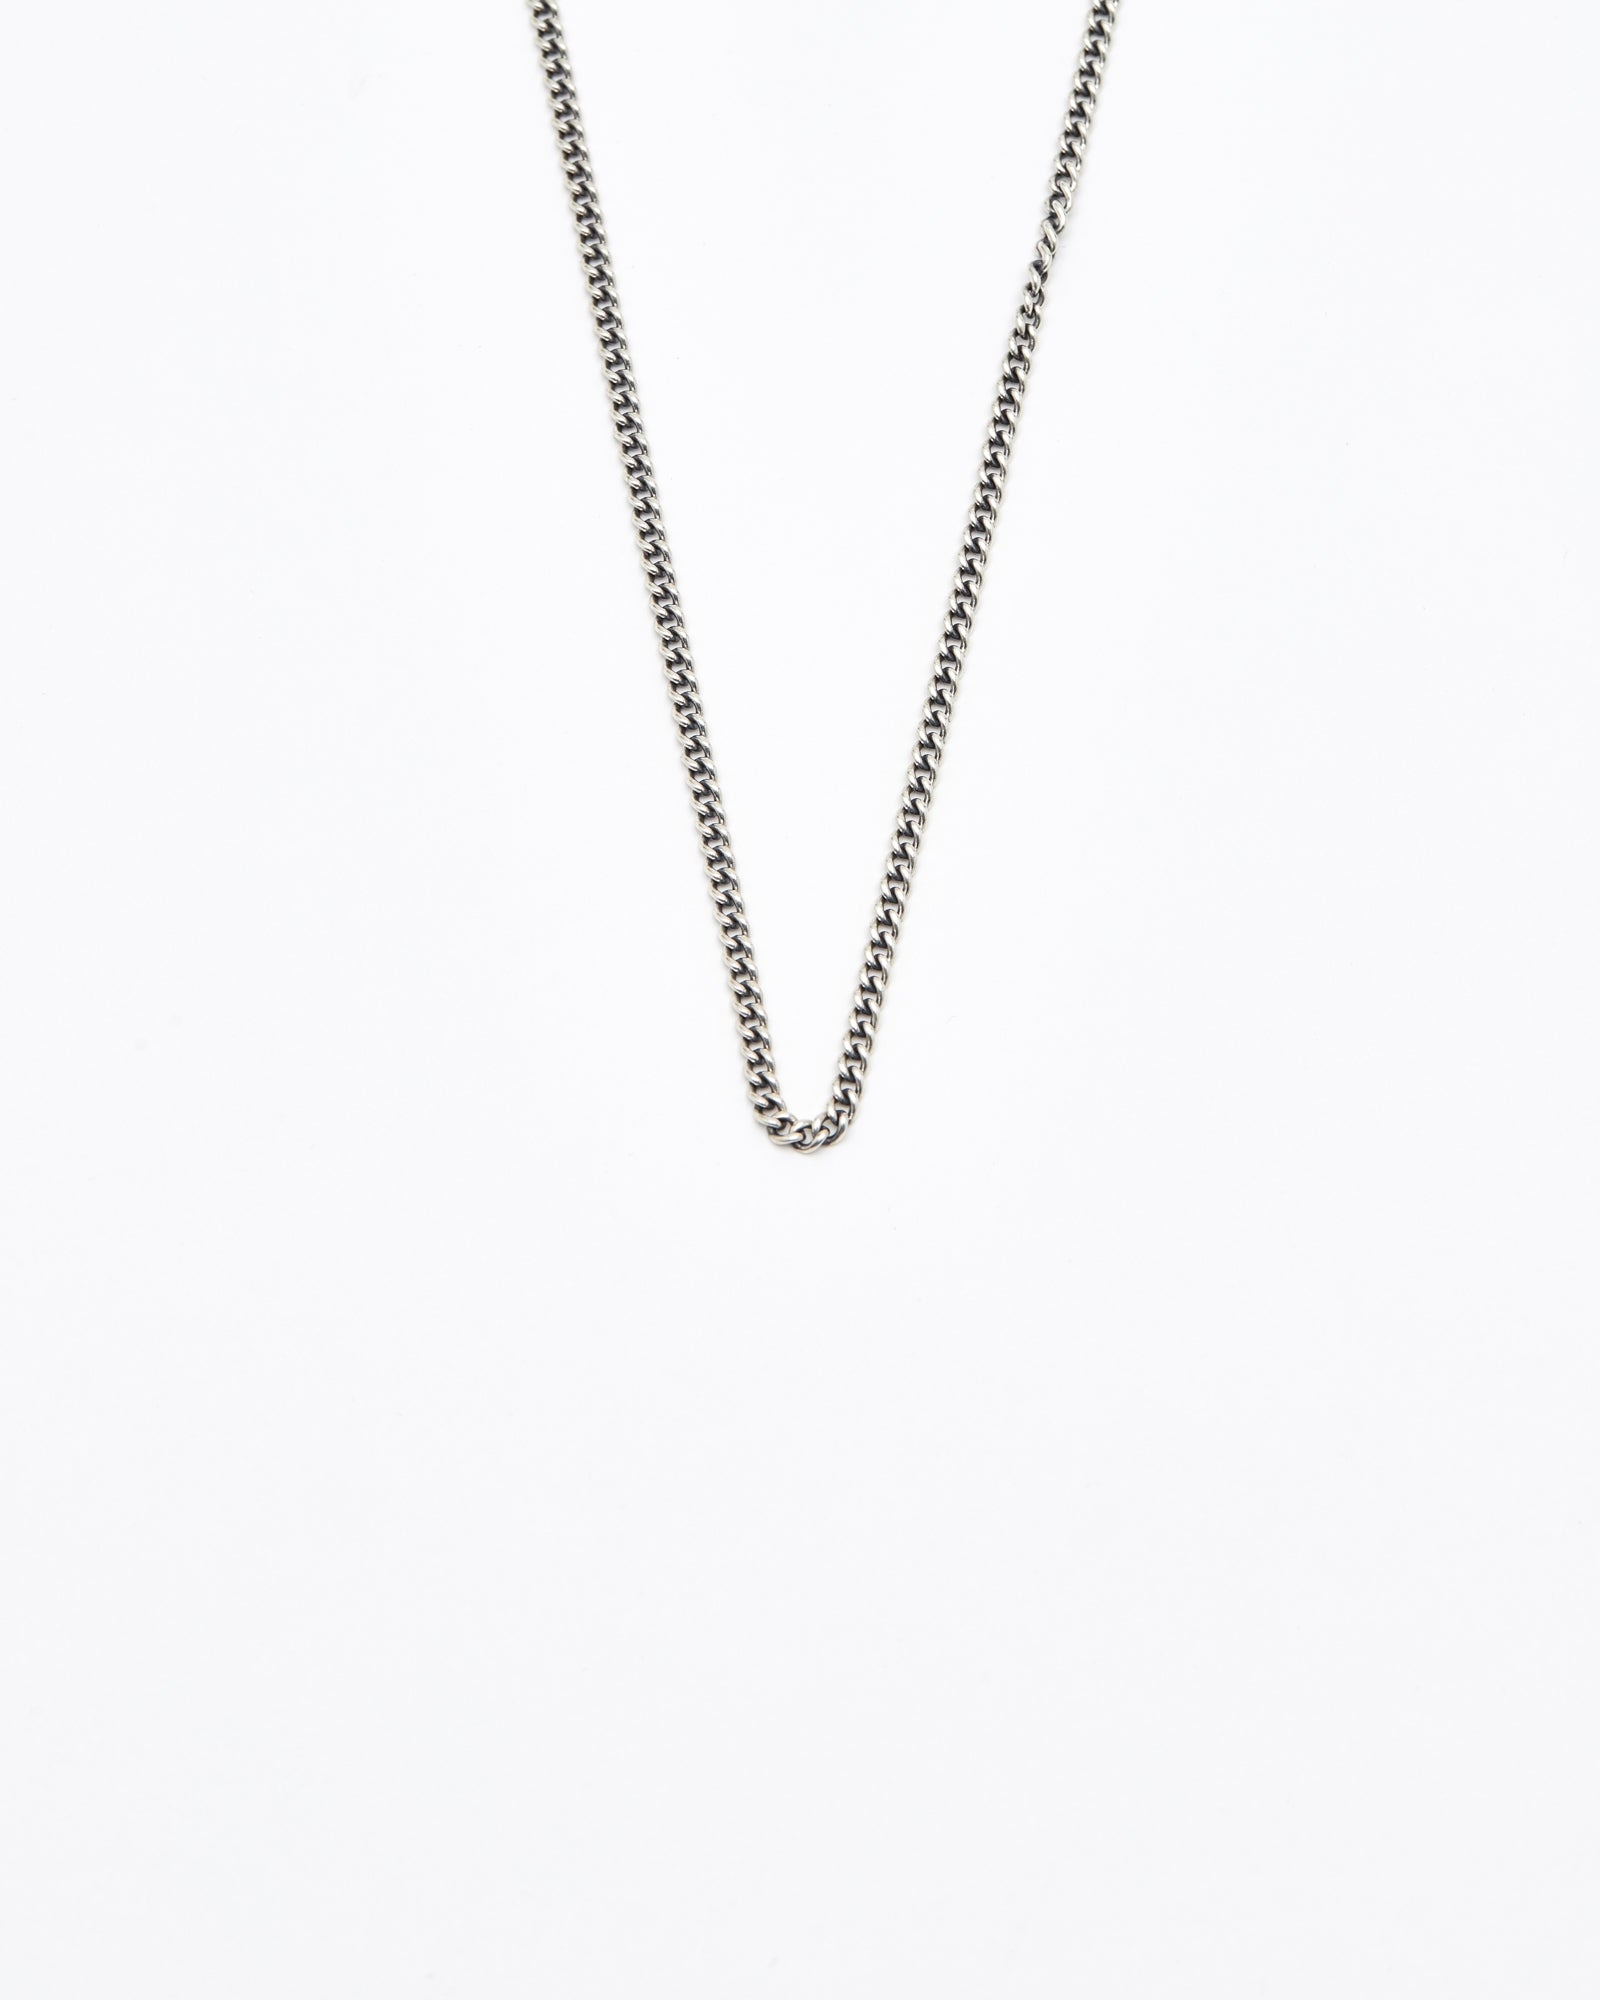 Curb Chain Necklace, #1, Sterling, 28""